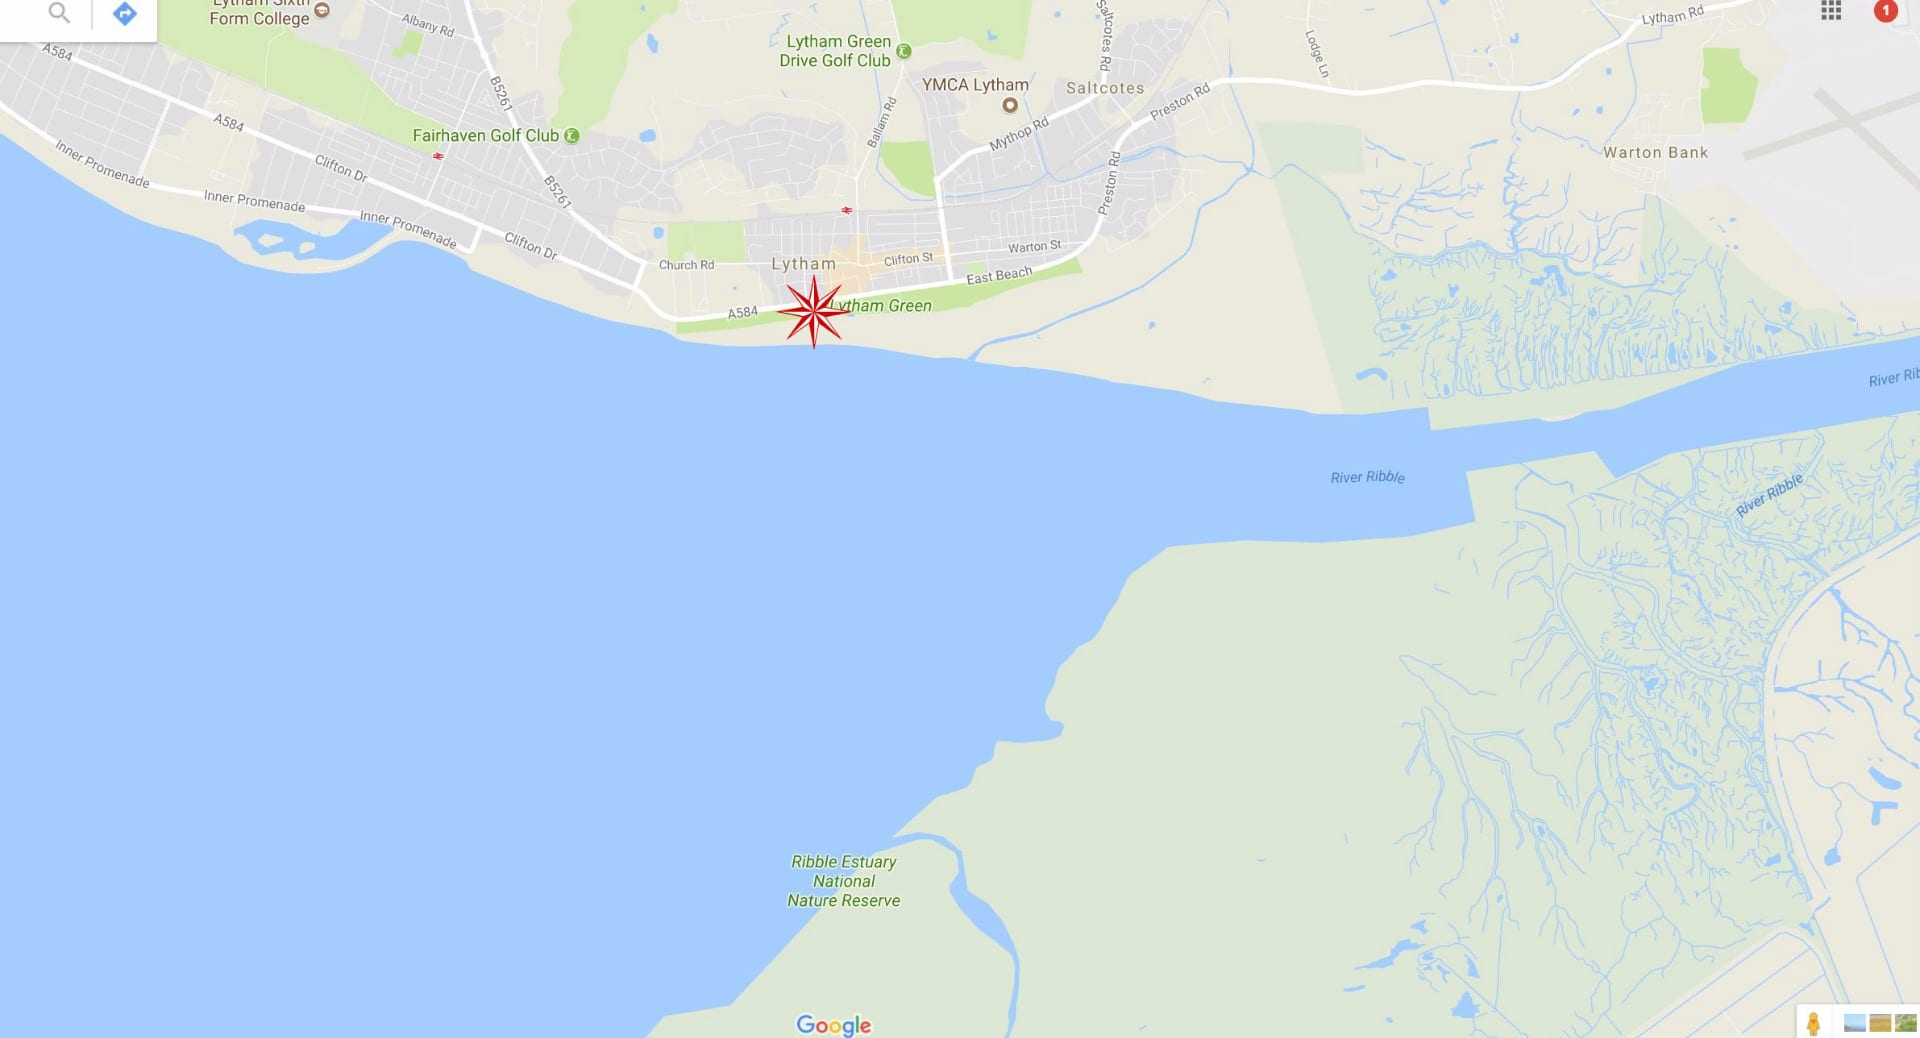 Google Map of Lytham seafront